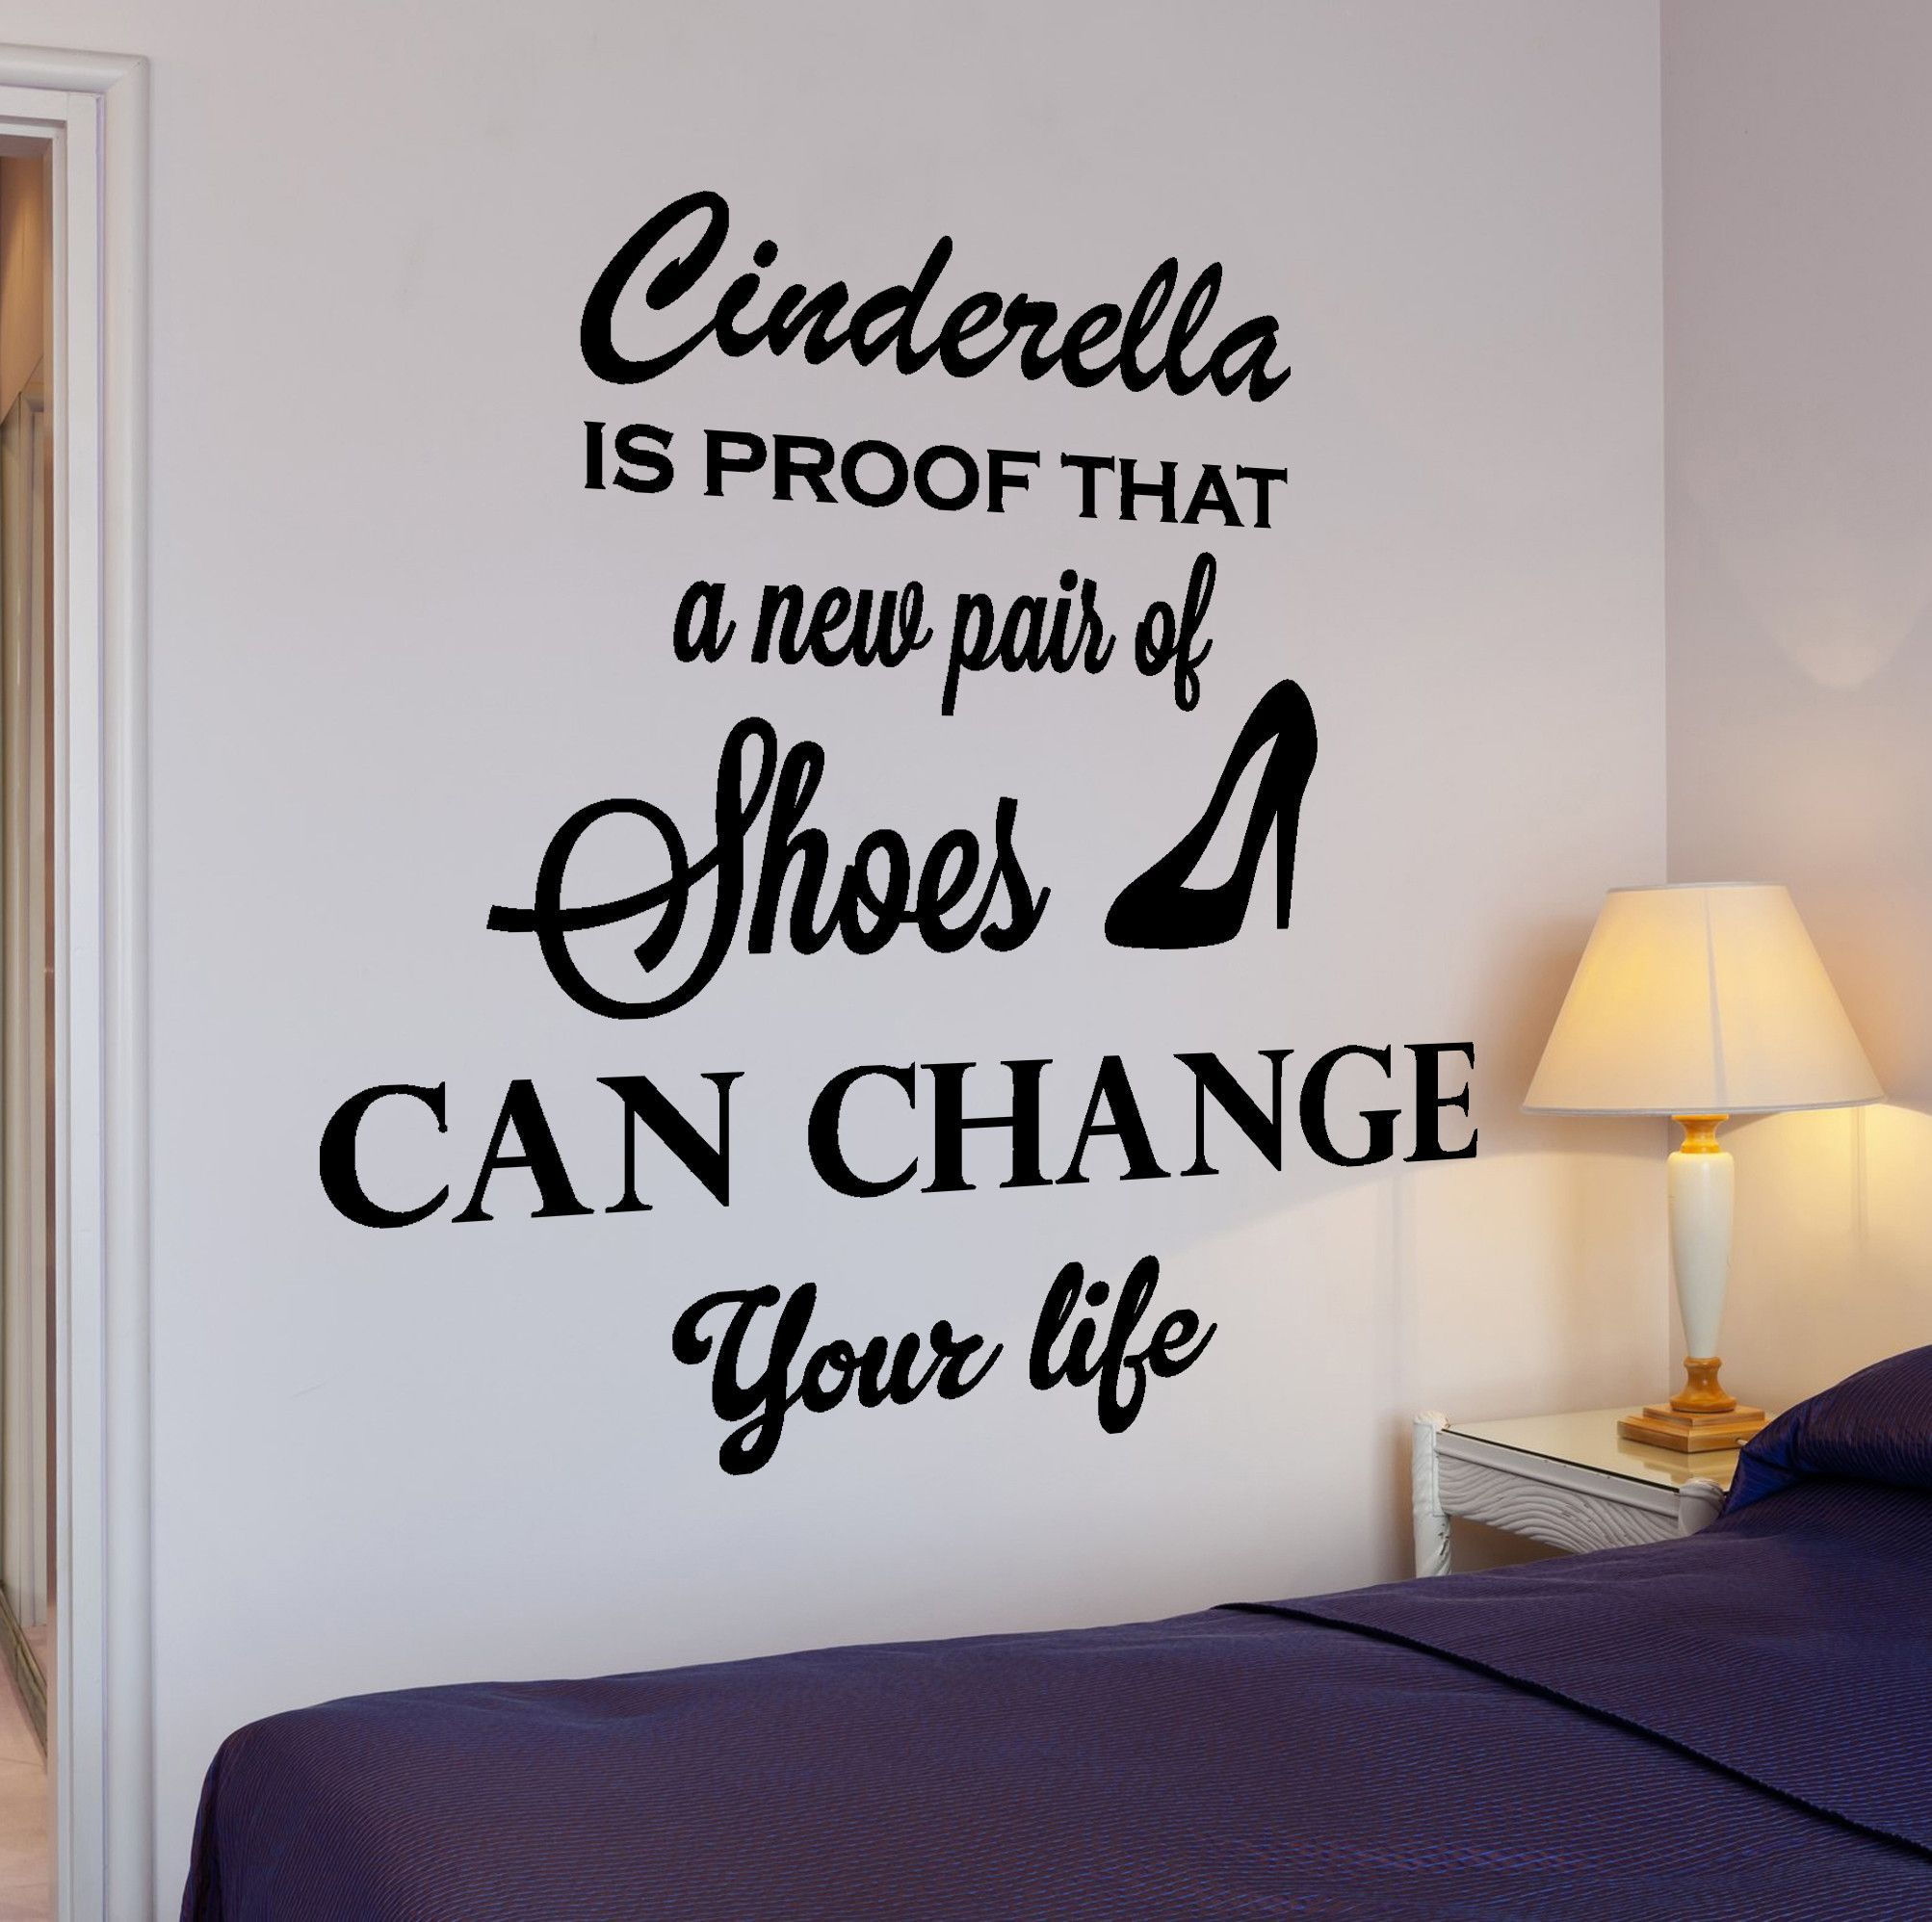 Wall Vinyl Decal Funny Quote Cinderella Is The Proof Shoes Home Interior Decor Unique Gift Z4302 Funny Quotes Quotes Inspirational Quotes